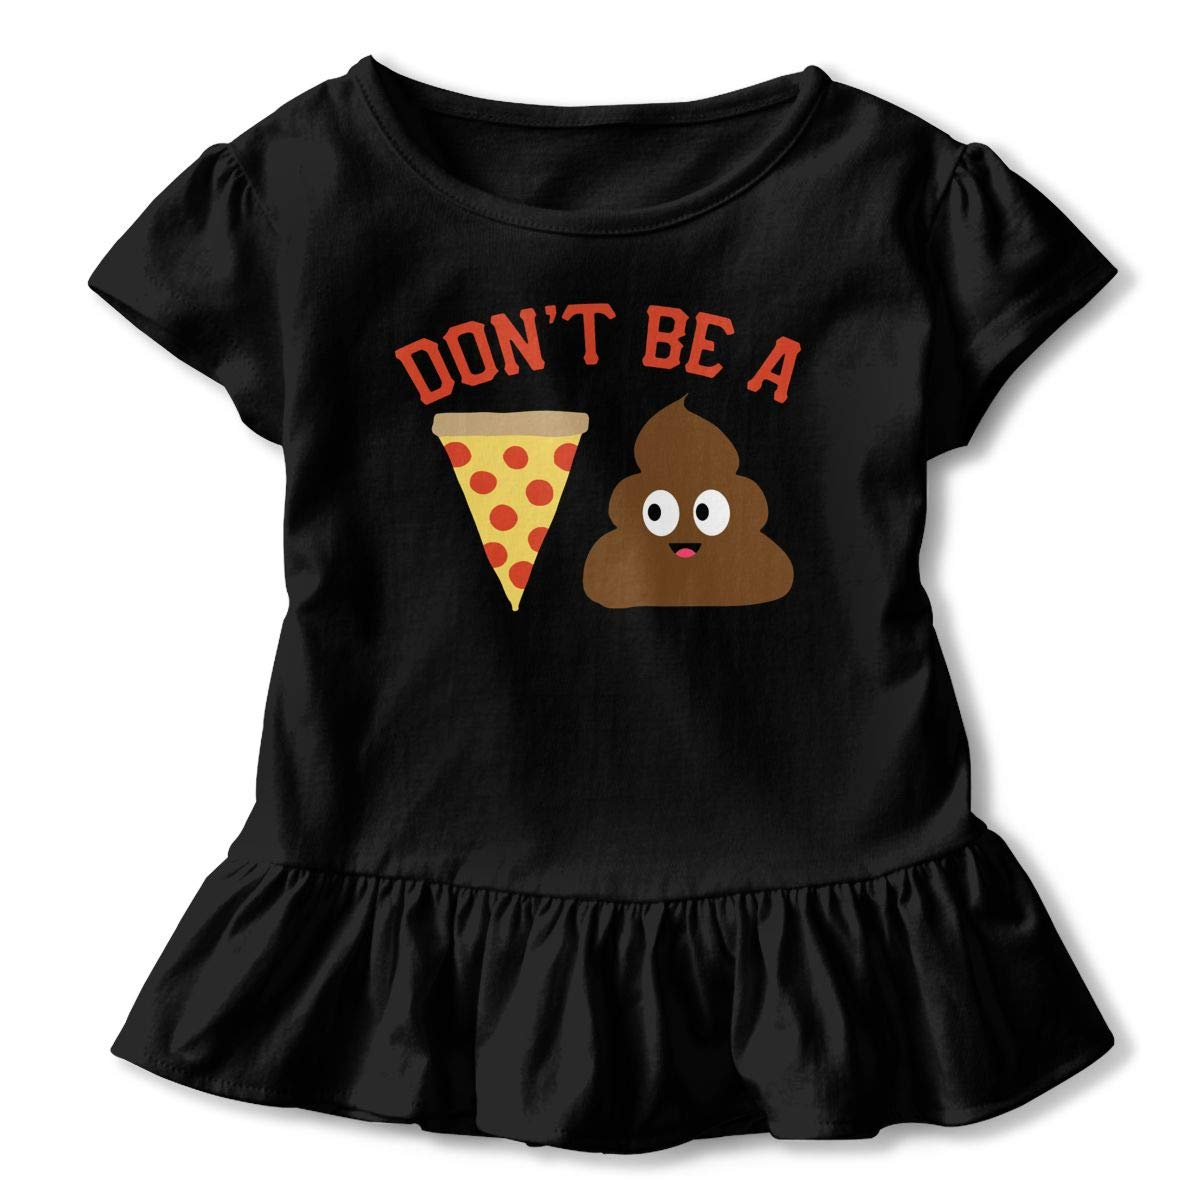 Dont Be A Pizza Poop Toddler Baby Girls Cotton Ruffle Short Sleeve Top Cute T-Shirt 2-6T